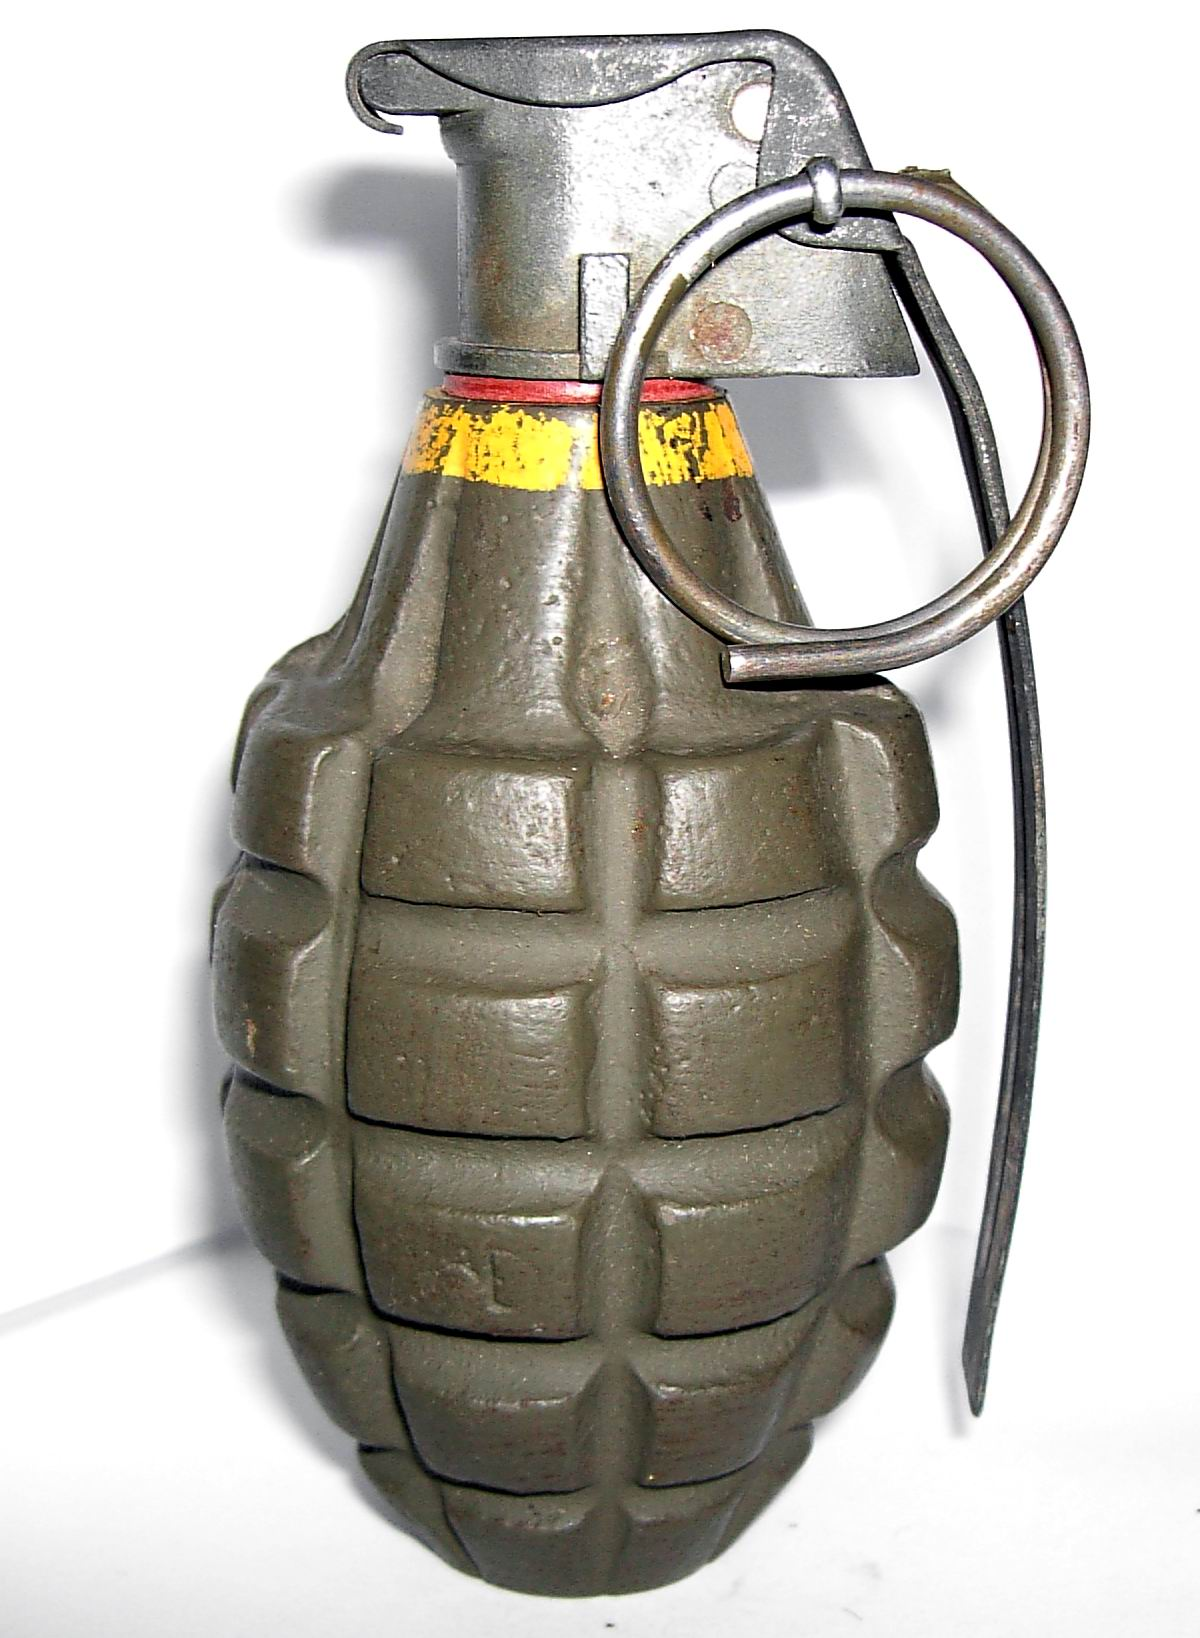 Army called into Fernie after man digs up grenade